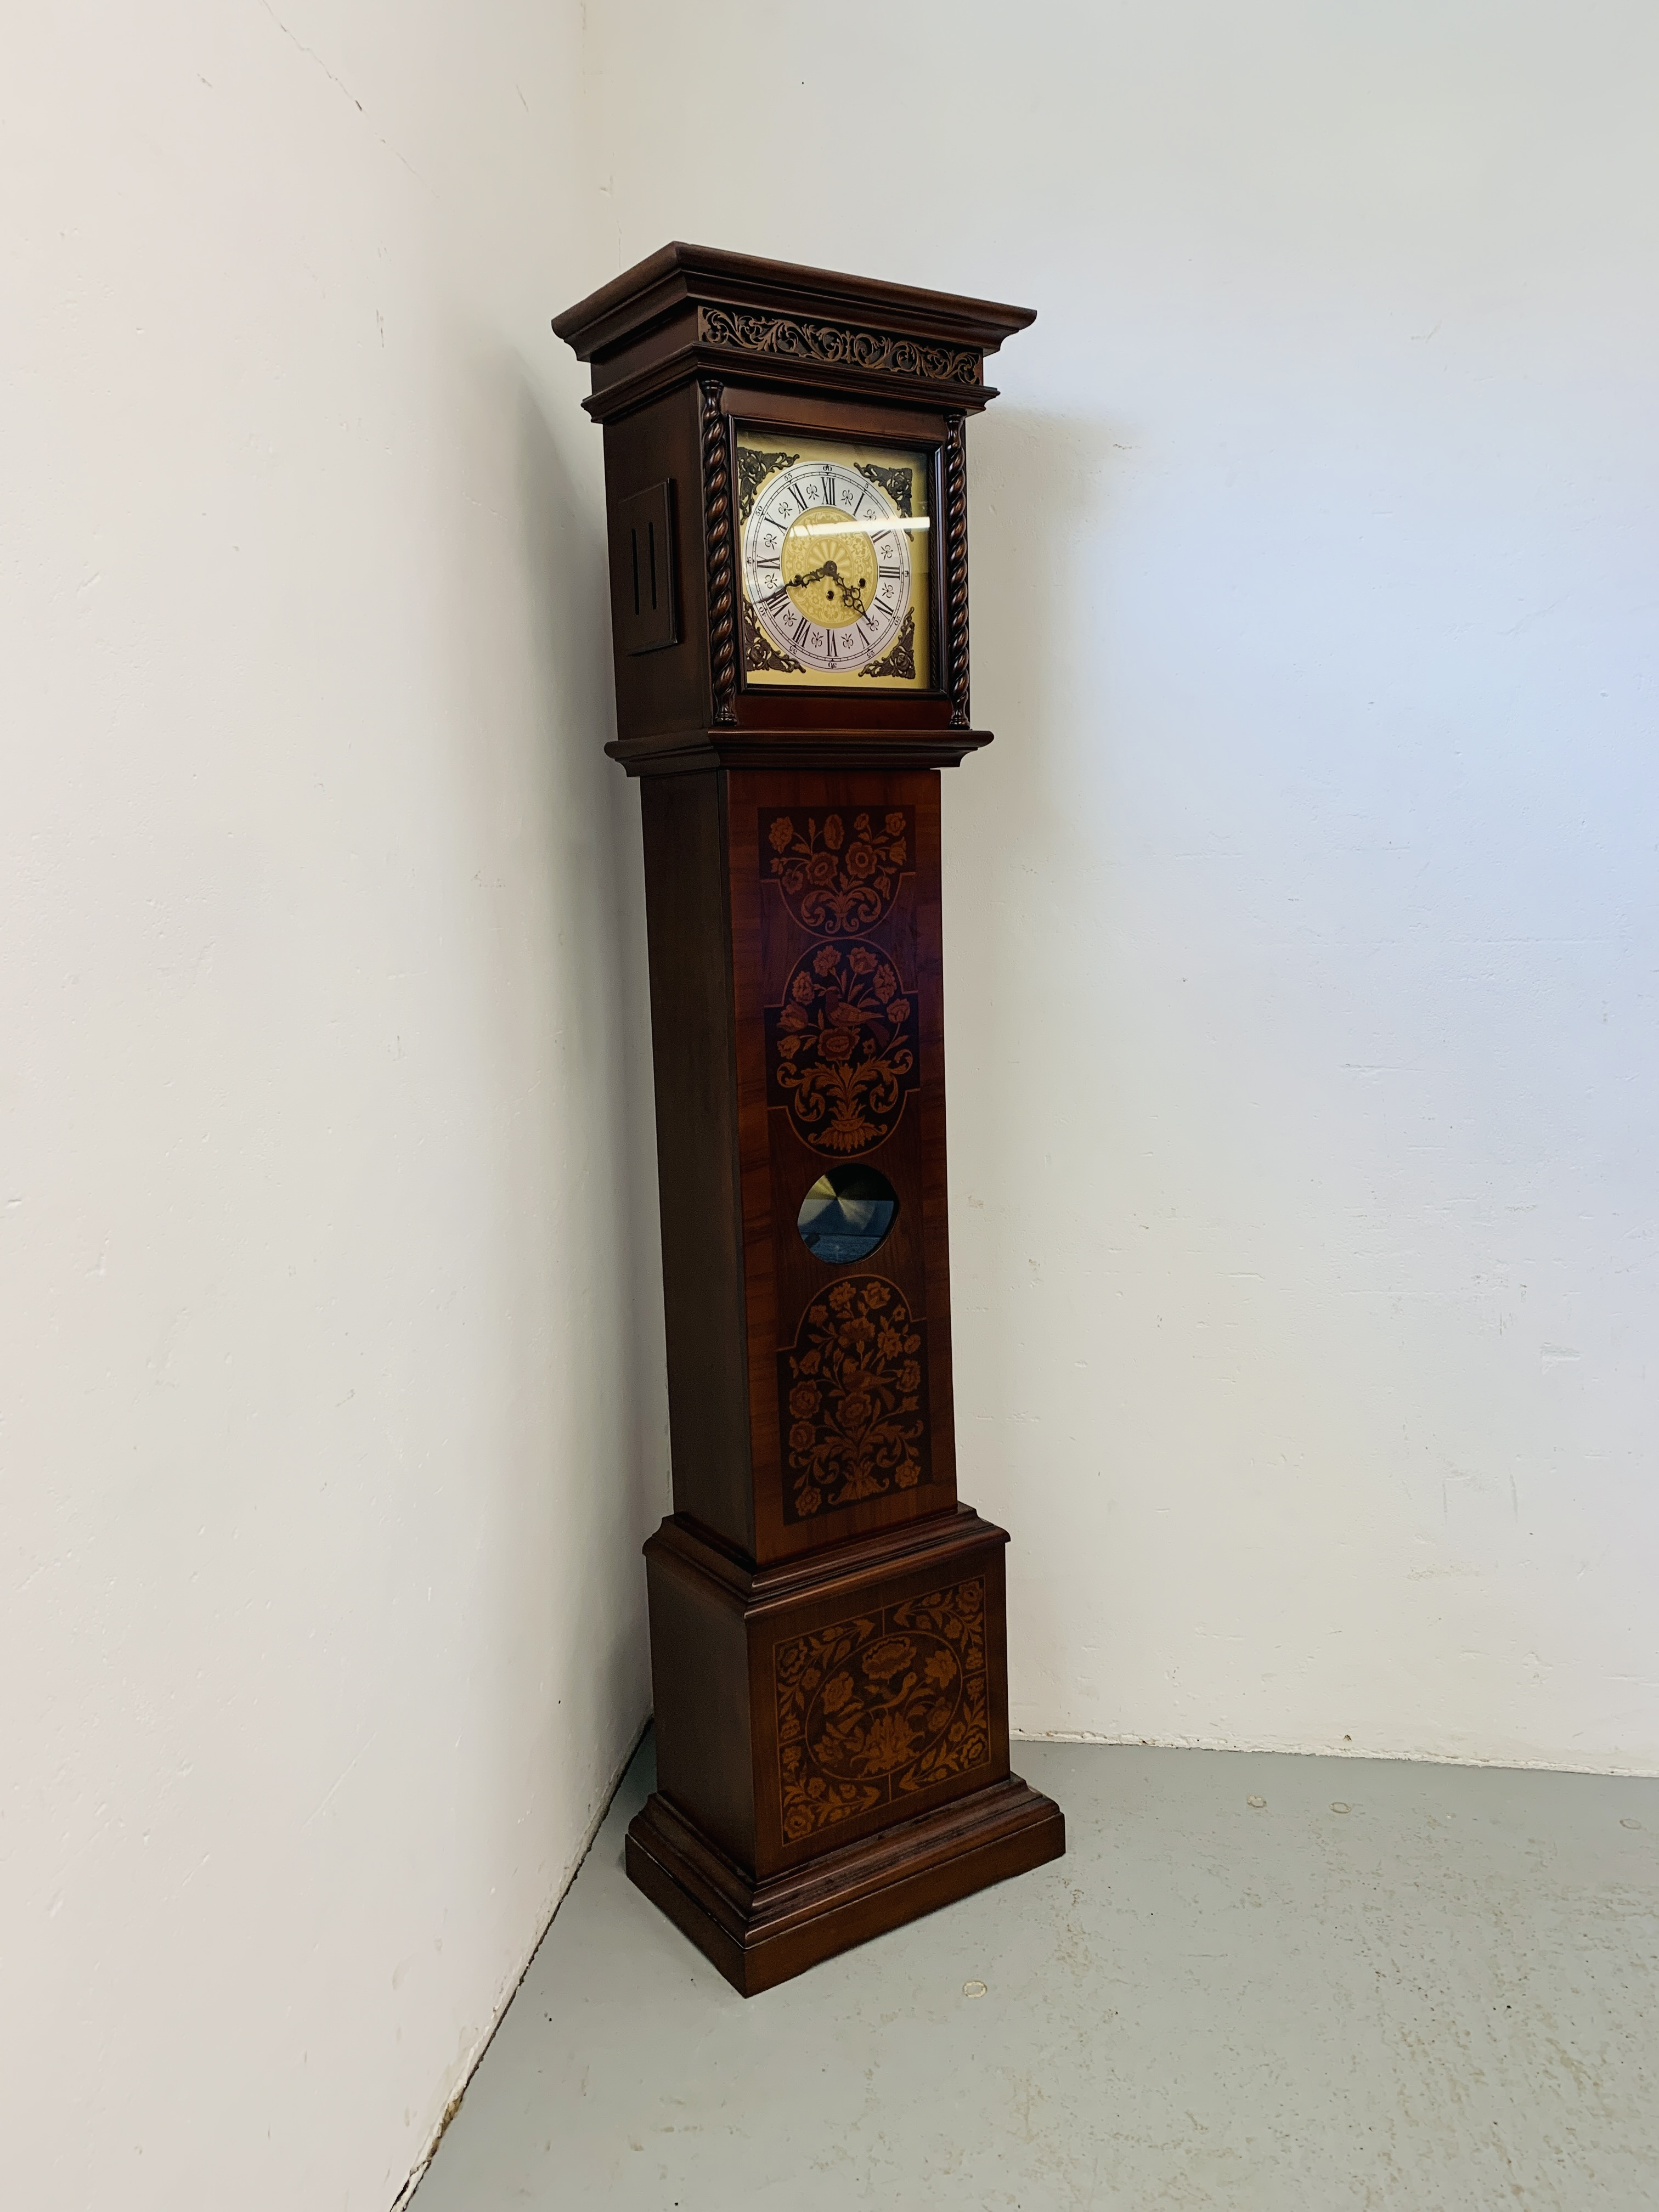 A GOOD QUALITY REPRODUCTION LONG CASE CLOCK - WESTMINSTER CHIME - SOLD AS SEEN - Image 2 of 19